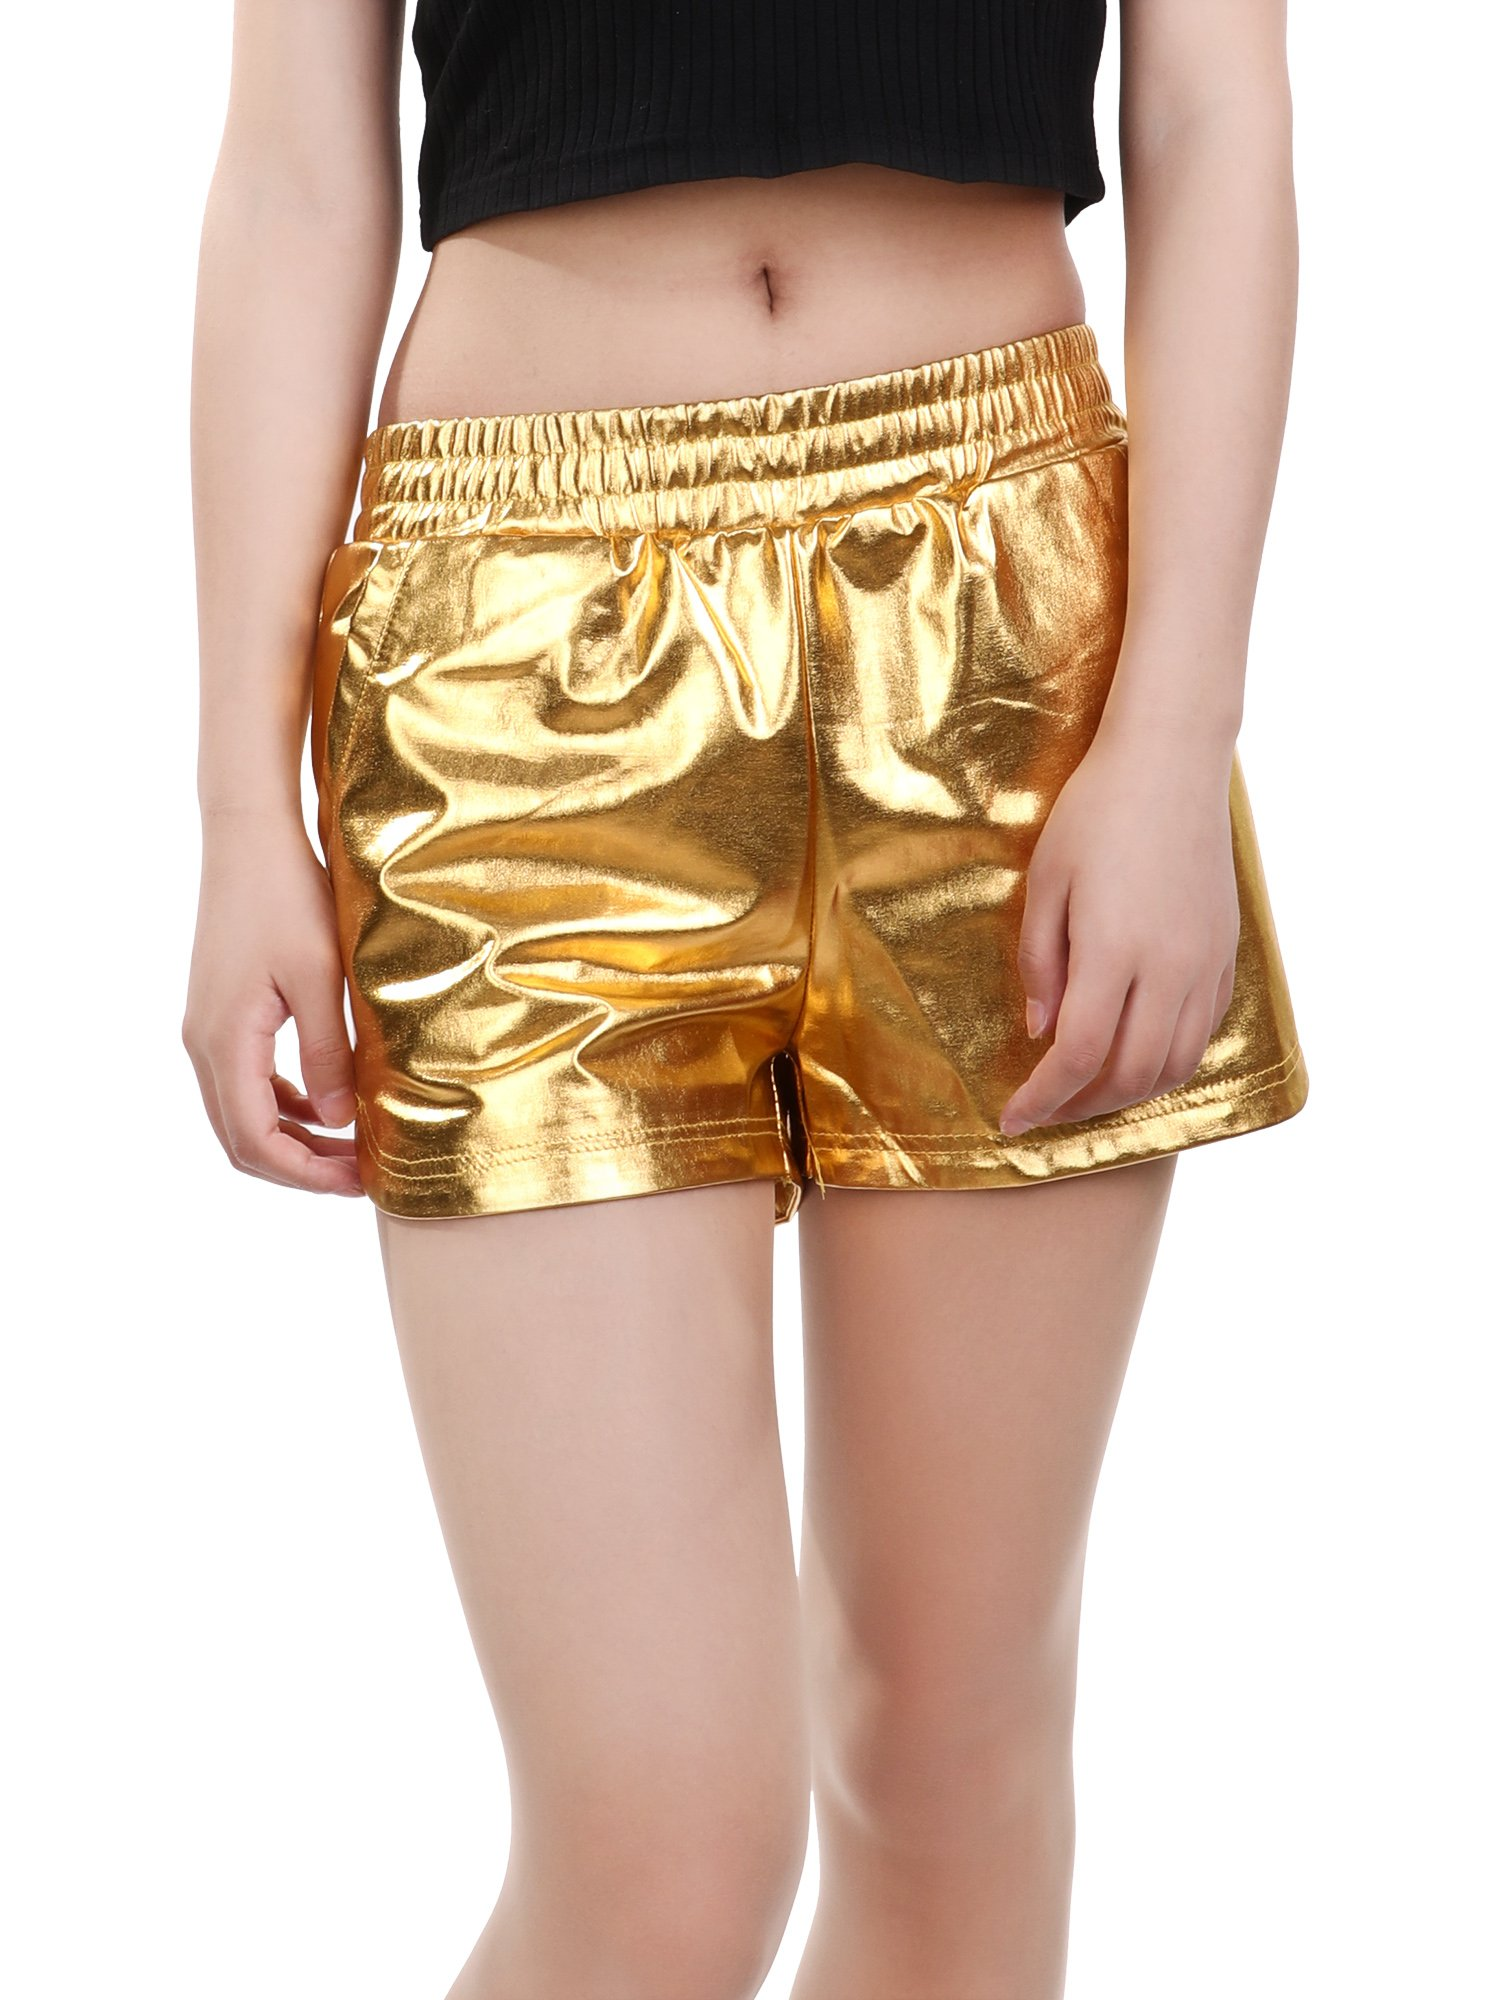 Skylety Metallic Shiny Shorts Women Sparkly Hot Shorts Girl Yoga Outfit Casual Loose Shorts (L Size, Gold) by Skylety (Image #1)